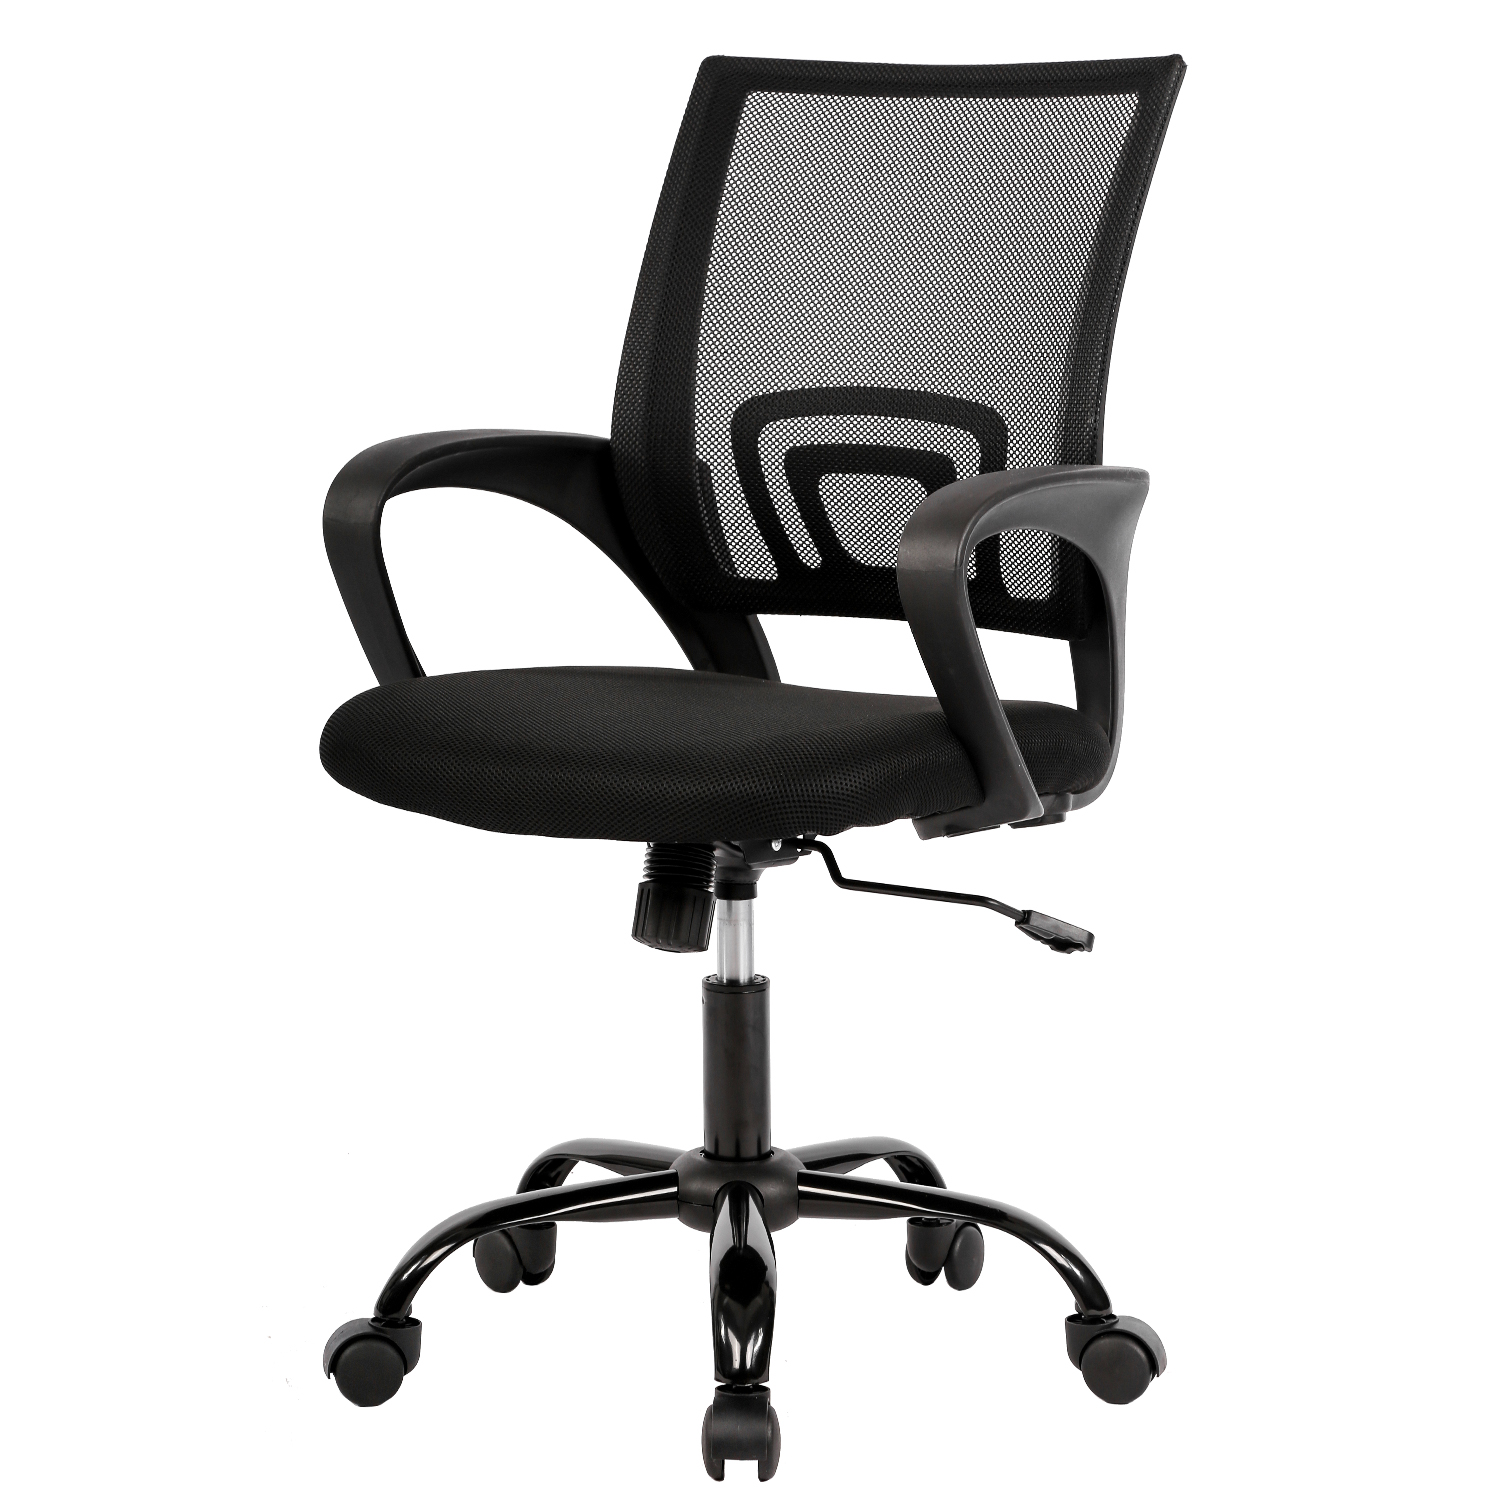 Mesh Office Chair Desk Chair Computer Chair Ergonomic Adjustable Stool Back Support Modern Executive Rolling Swivel Chair For Women Men Black Walmart Com Walmart Com